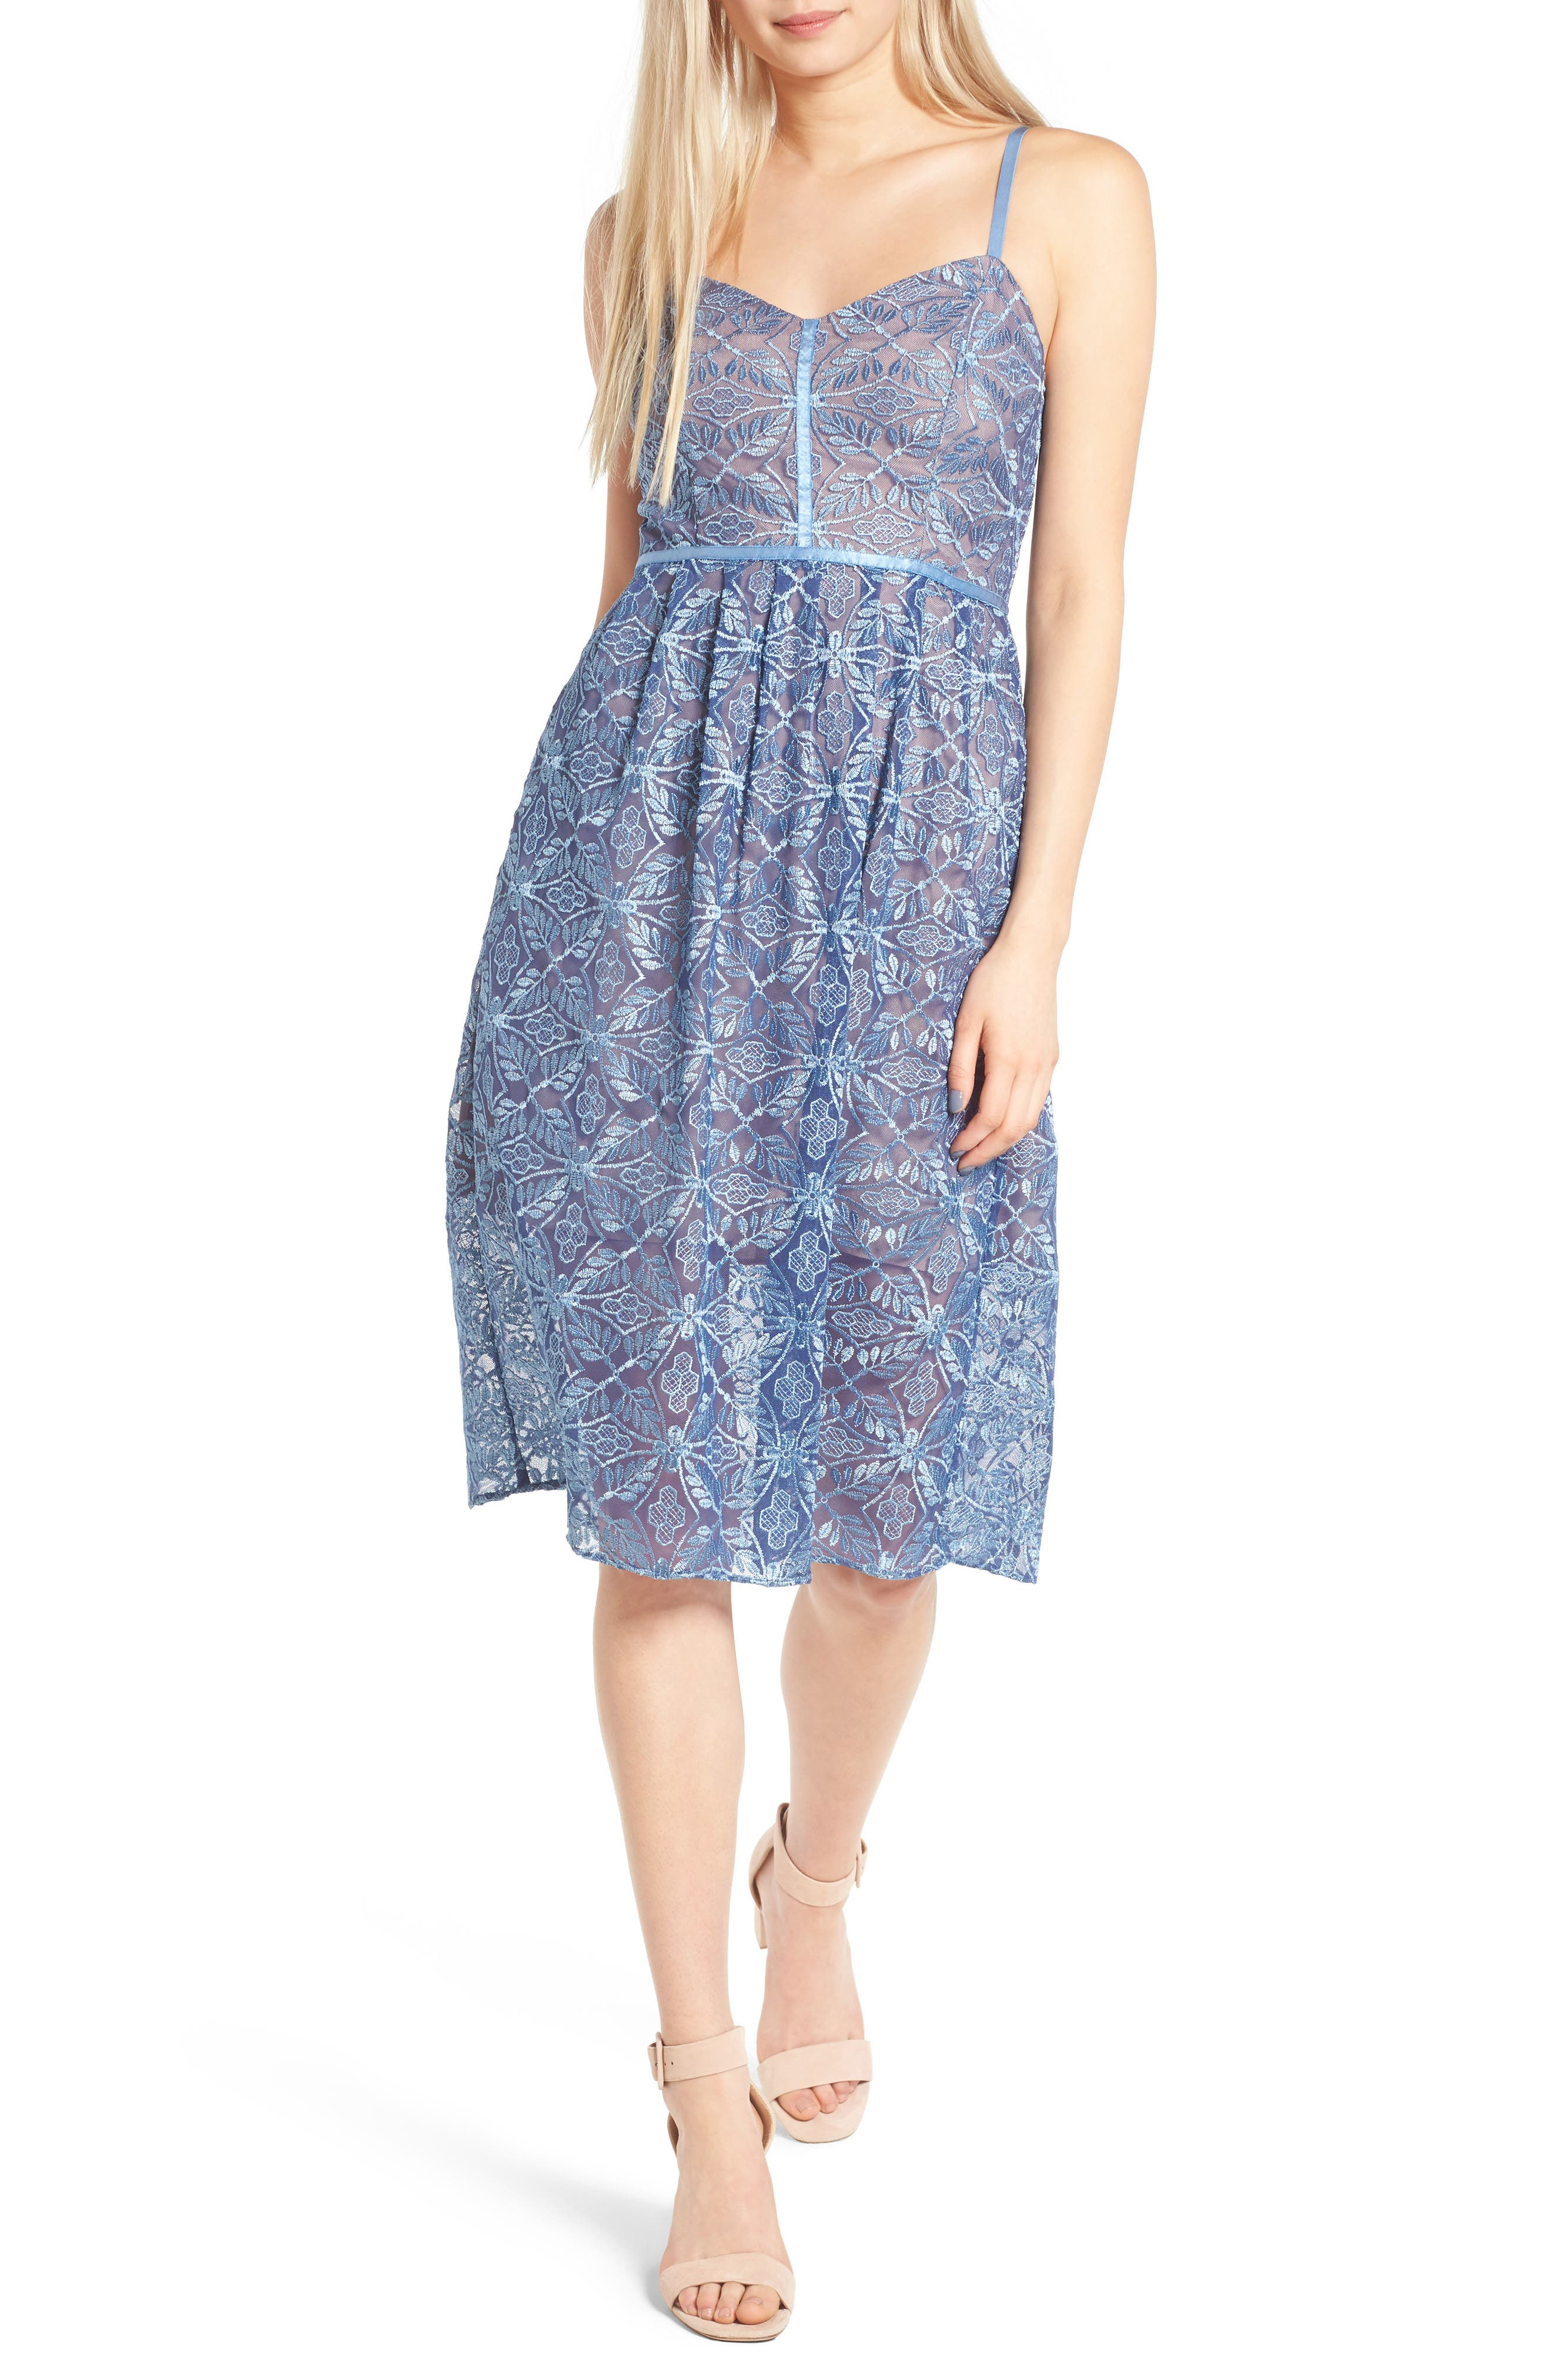 devlin Eloise Embroidered Lace Slipdress